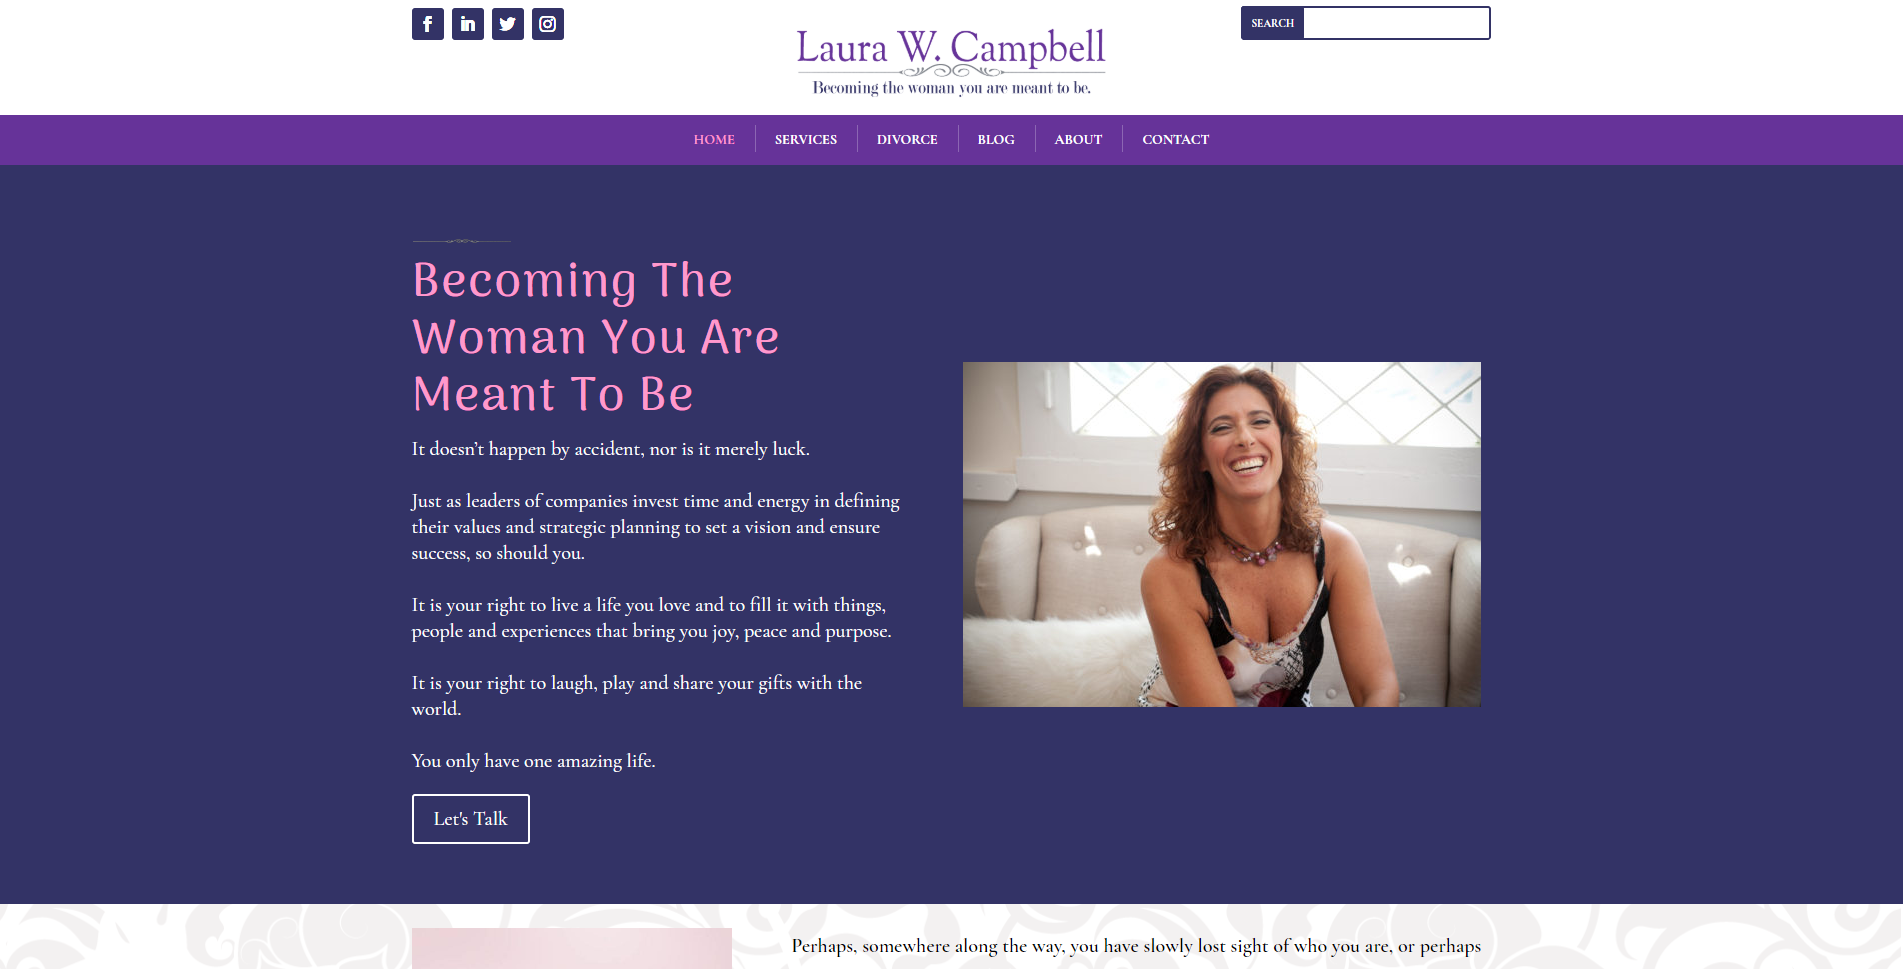 screenshot-laurawcampbell.com-2020.08.19-17-57-29